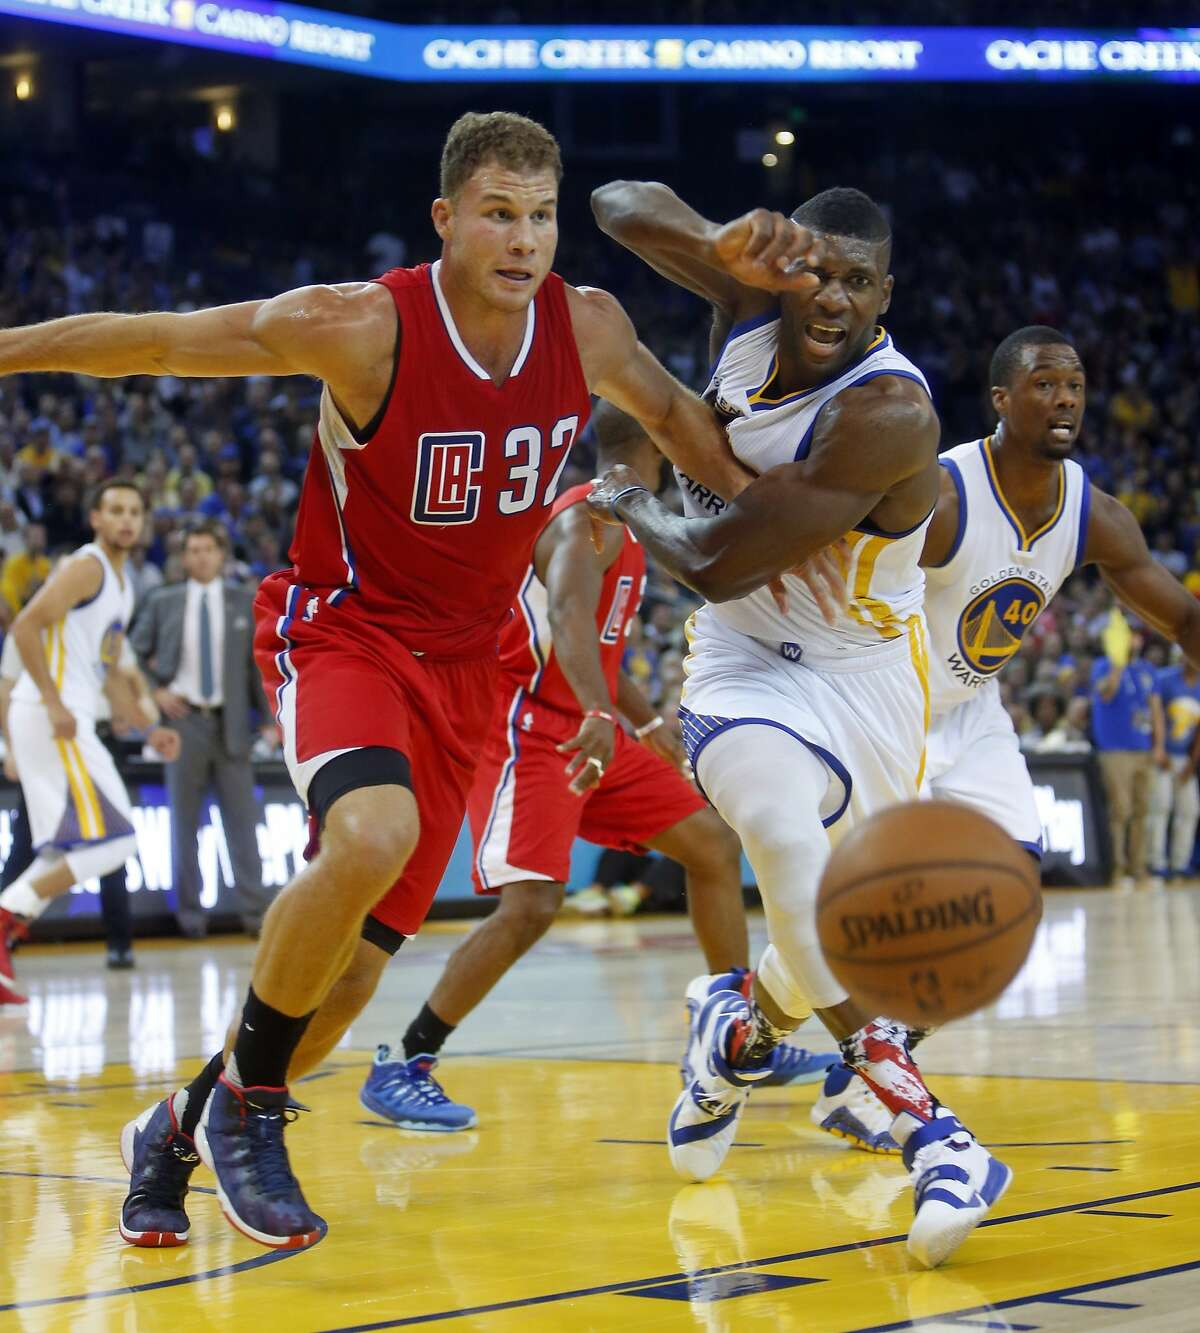 Los Angeles Clippers' Blake Griffin keeps Golden State Warriors' Festus Ezeli from getting to a loose ball in 2nd quarter during NBA game at Oracle Arena in Oakland, Calif., on Wednesday, November 4, 2015.